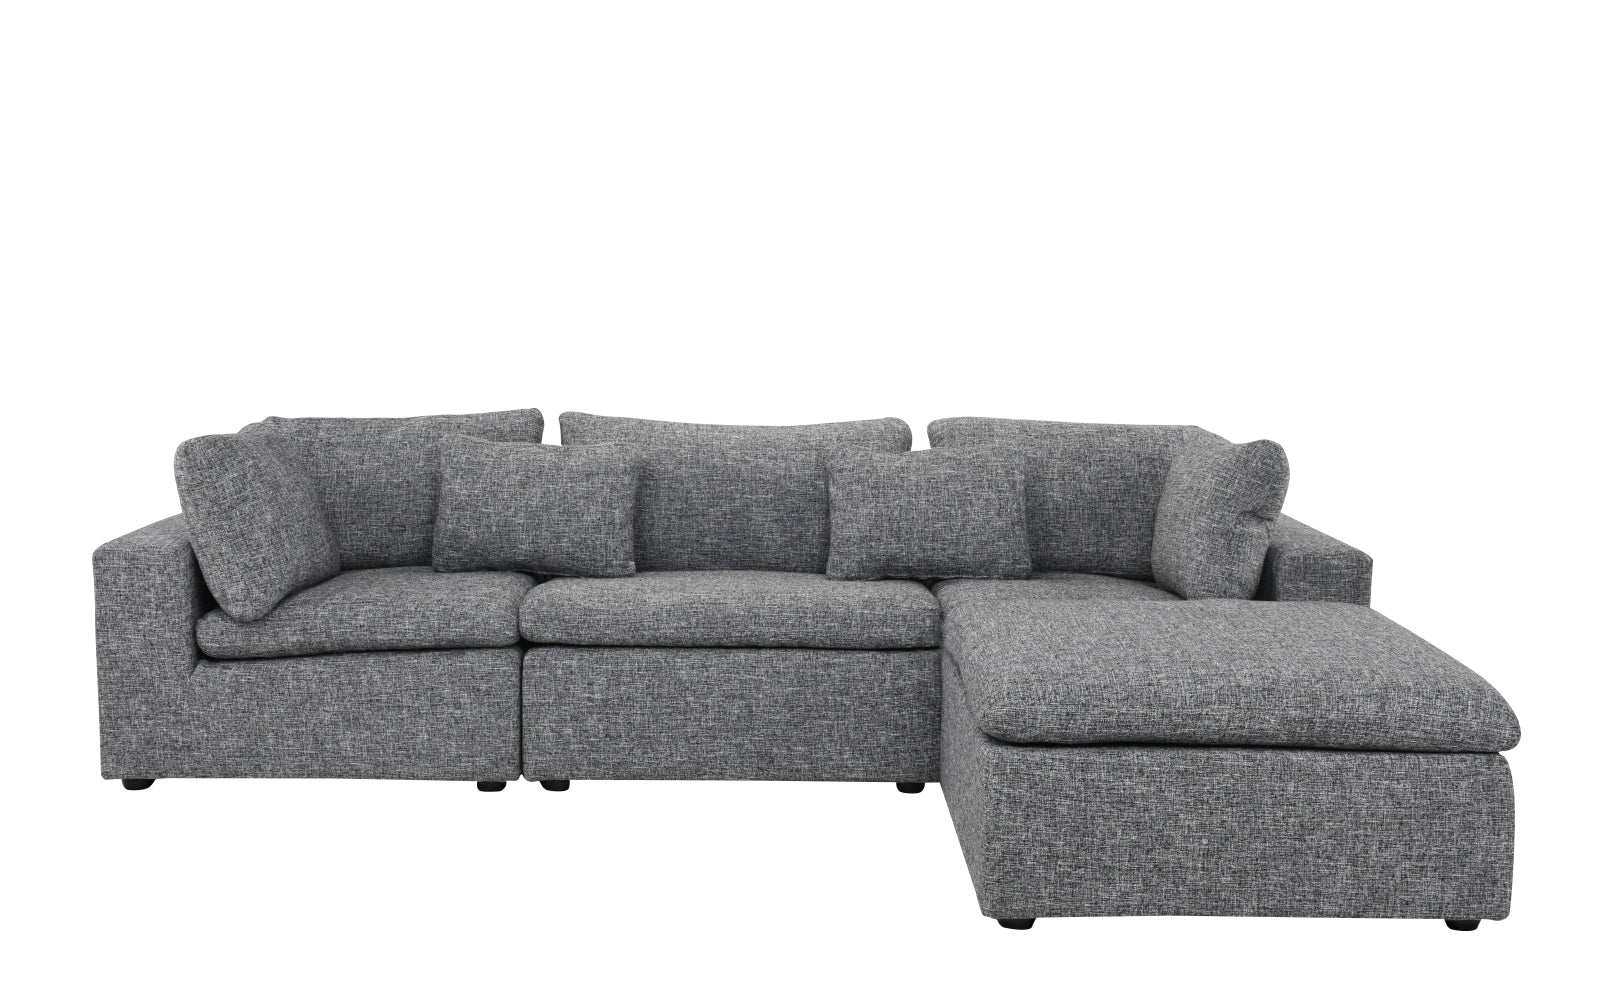 Delano Modern Low Profile Sectional Sofa with Chaise | Sofamania.com